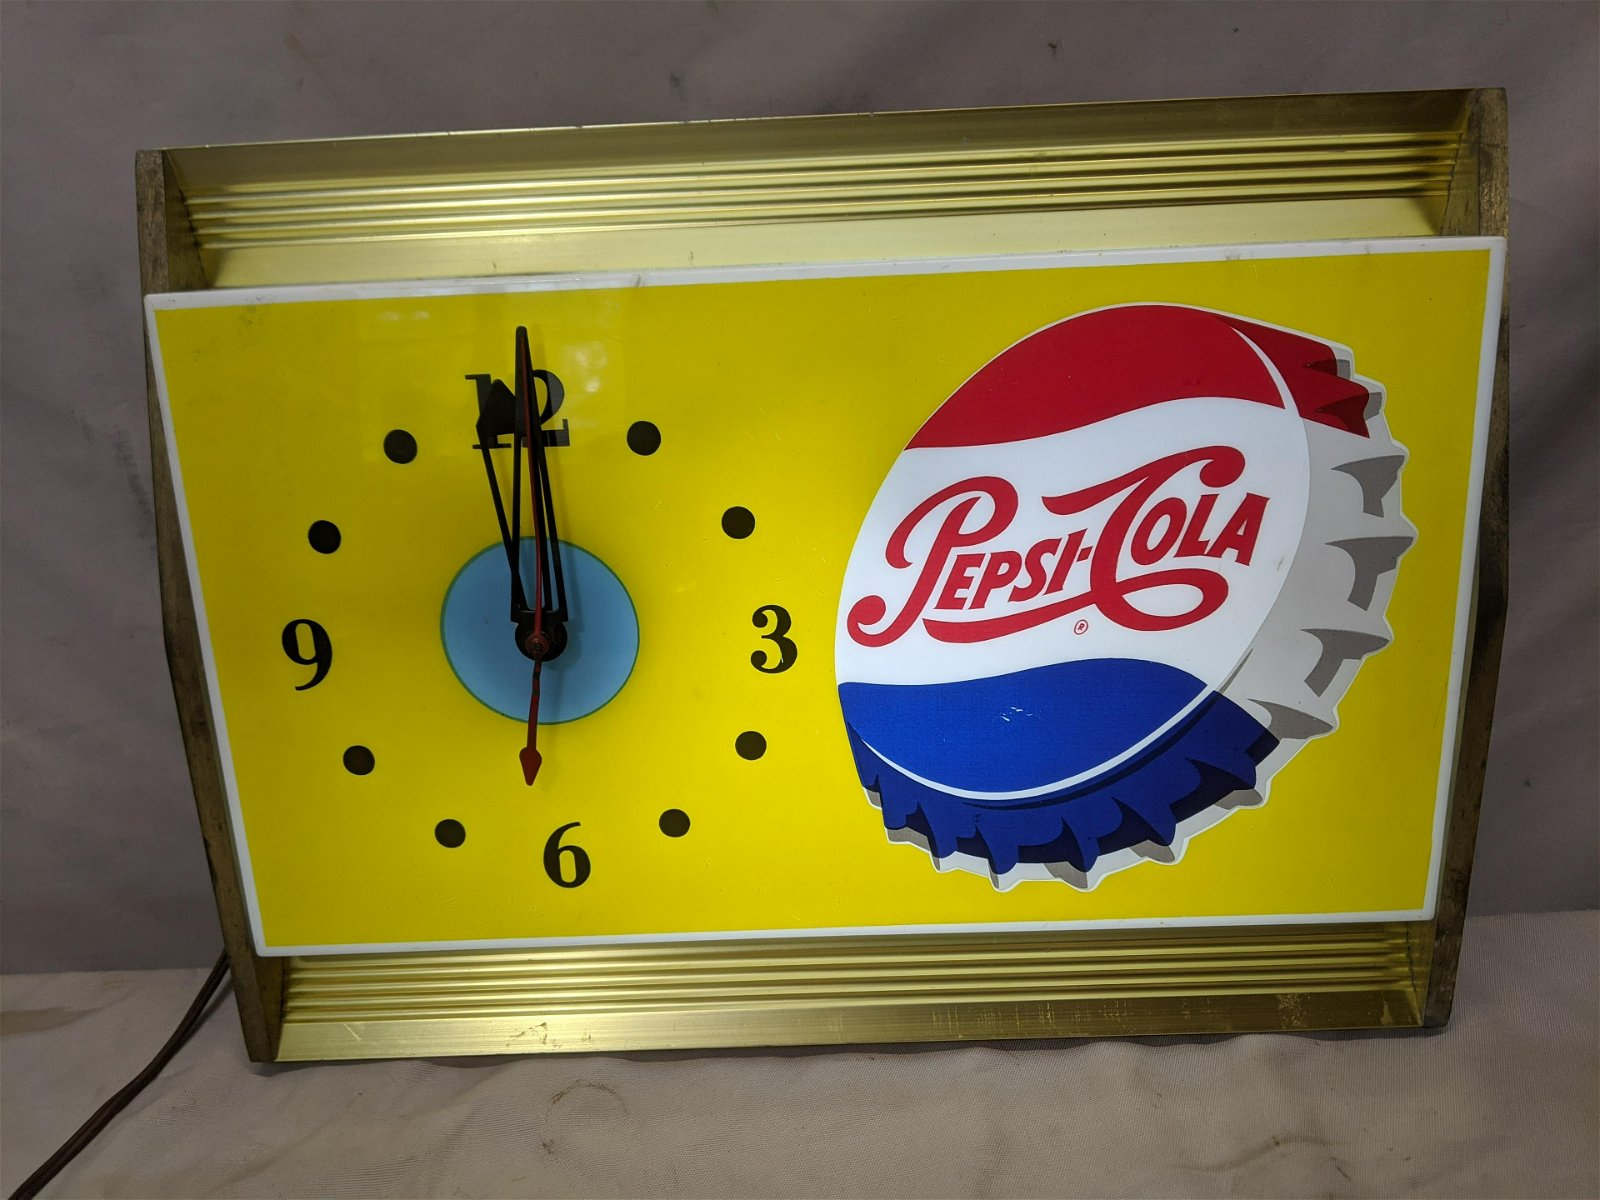 c1950's Pepsi Cola Light Up Wall Sign Clock by